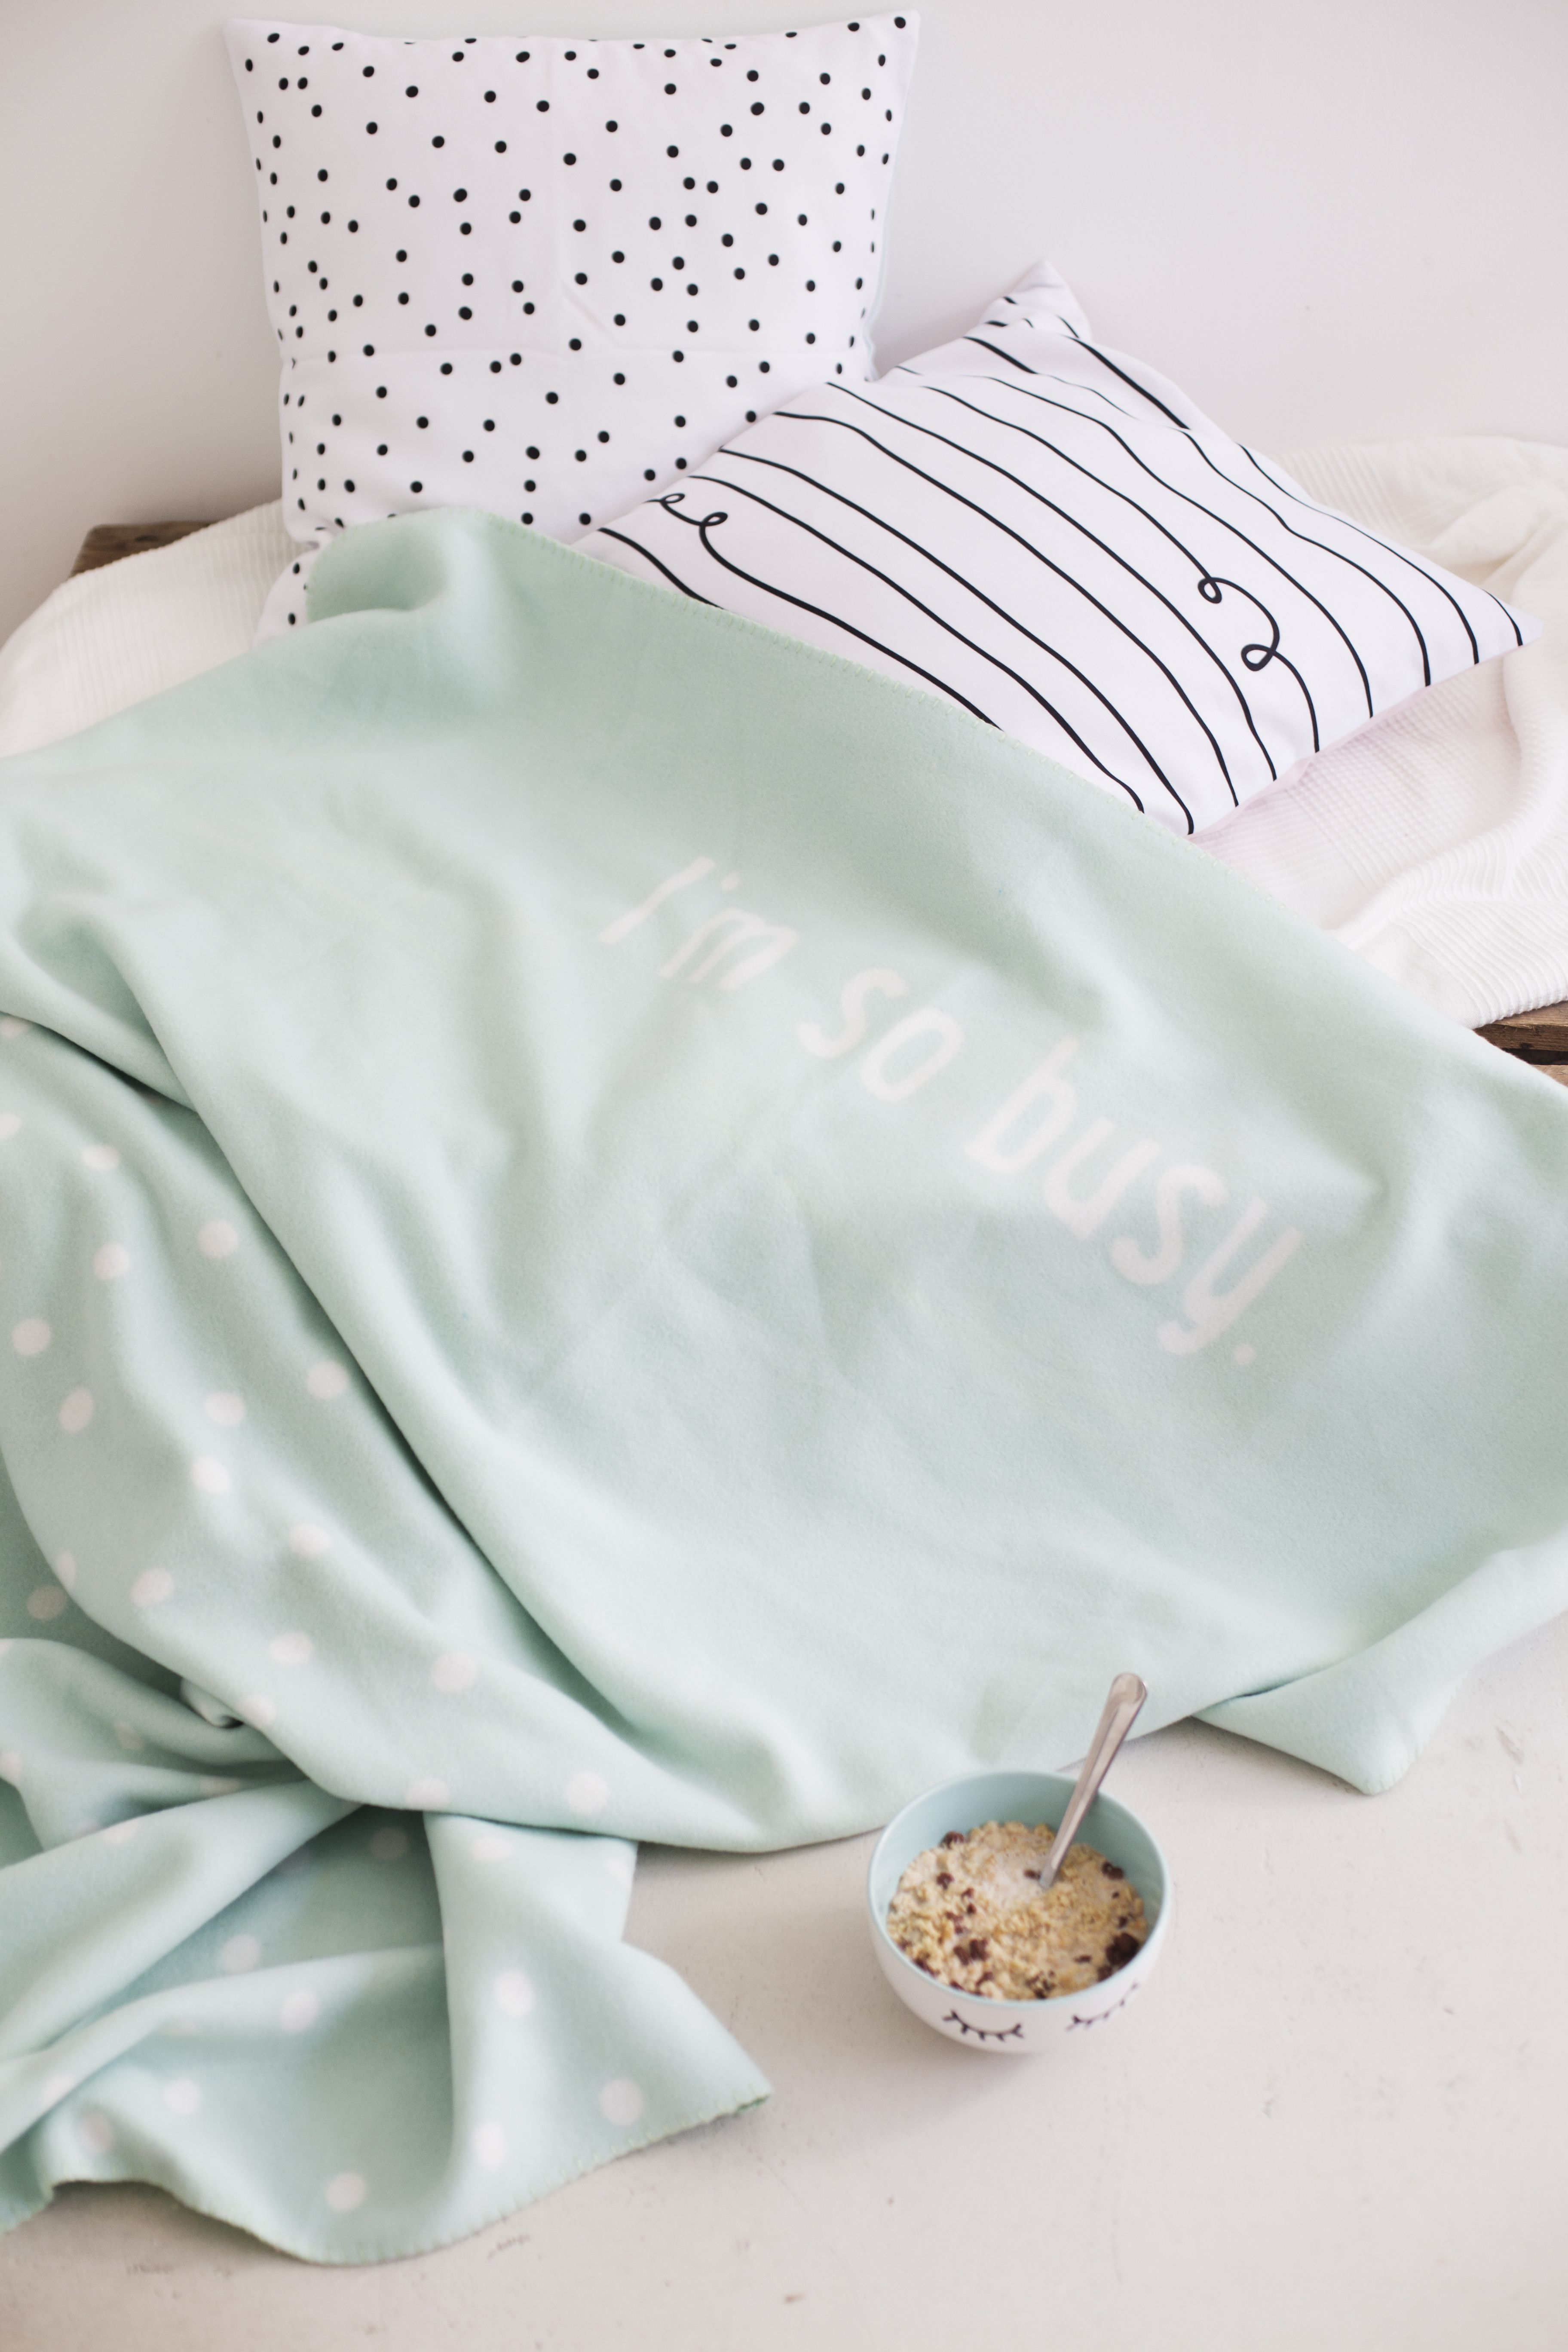 For a cosy day in bed. let'sstayhome, blnaket,pillows,dots.stripes,mint,cereals,bowl,white,black